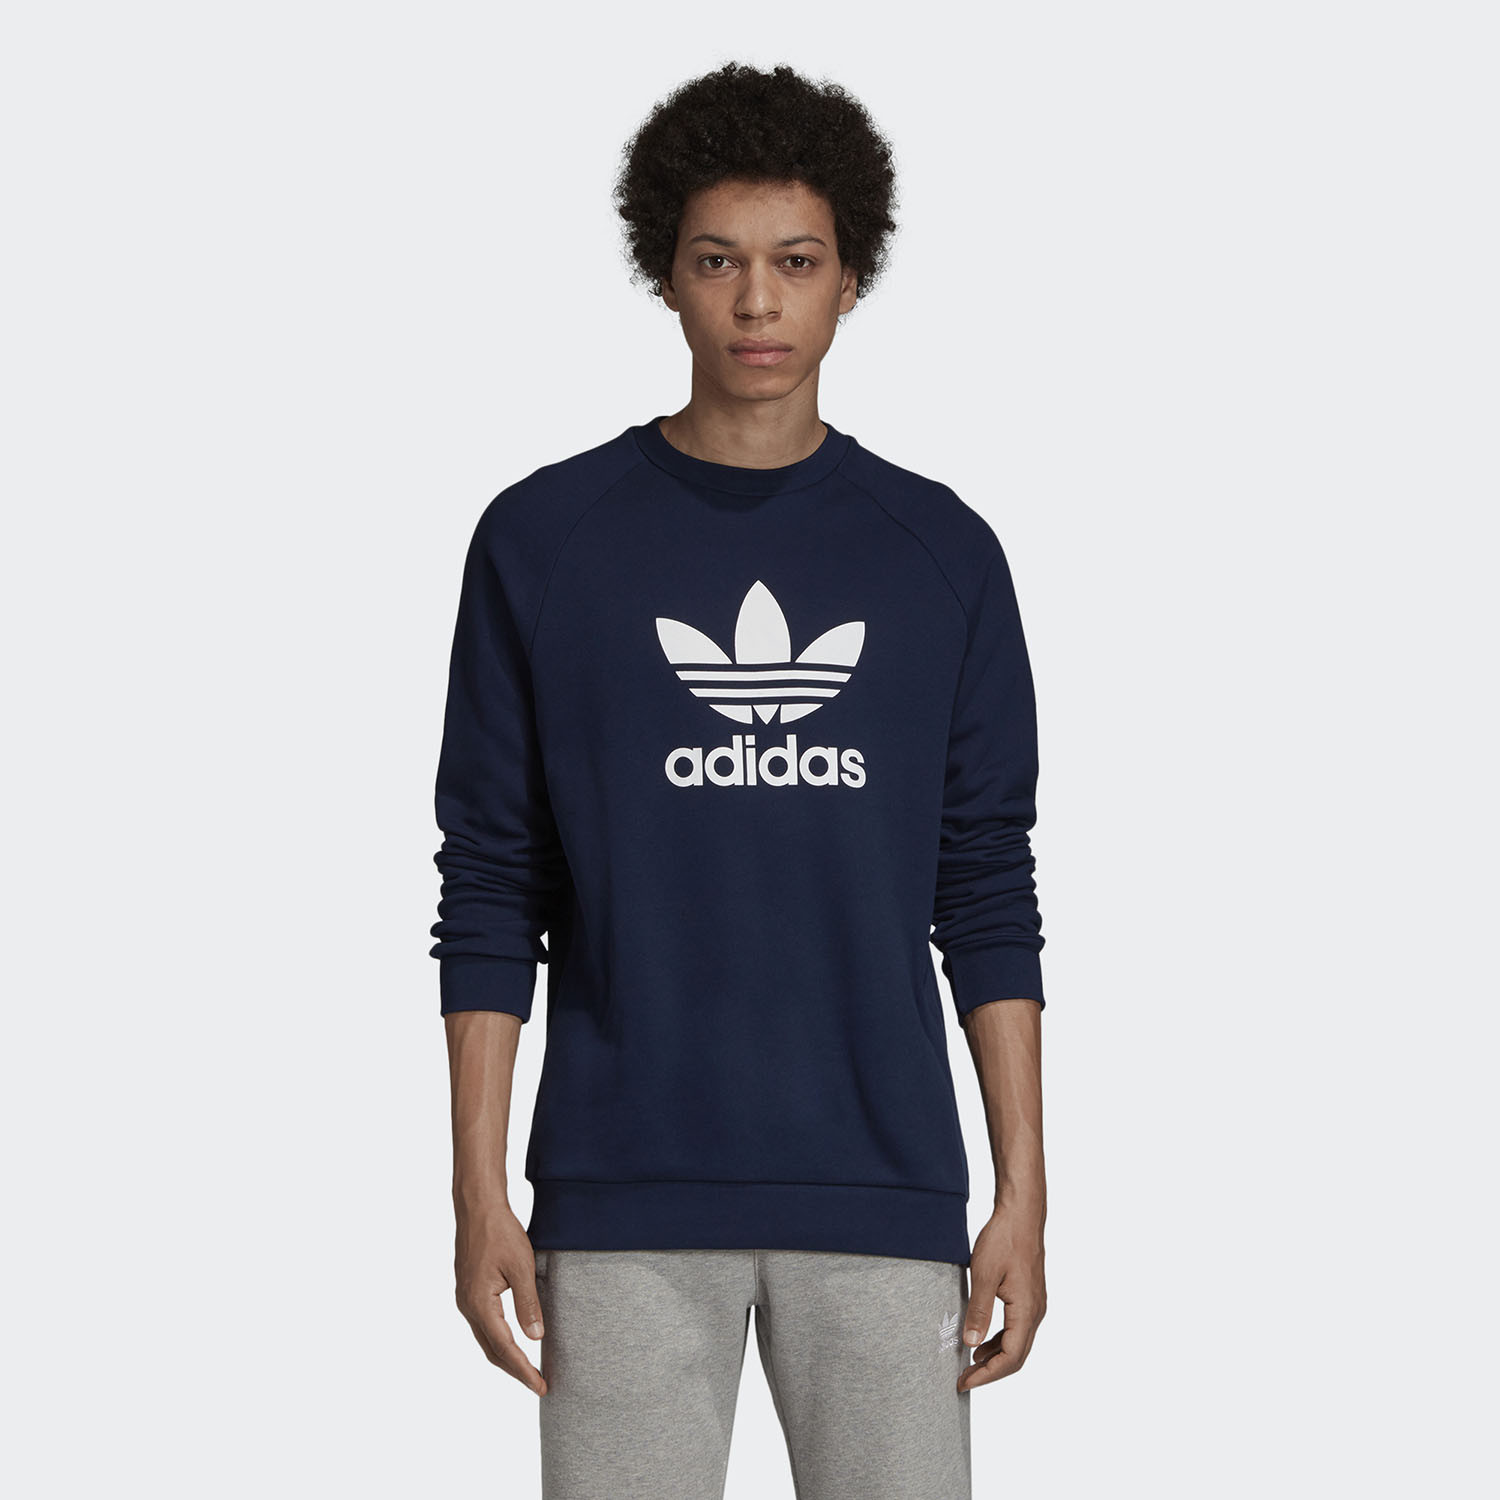 adidas Originals Trefoil Warm-Up Crew Ανδρικό Φούτερ (9000058717_7646)